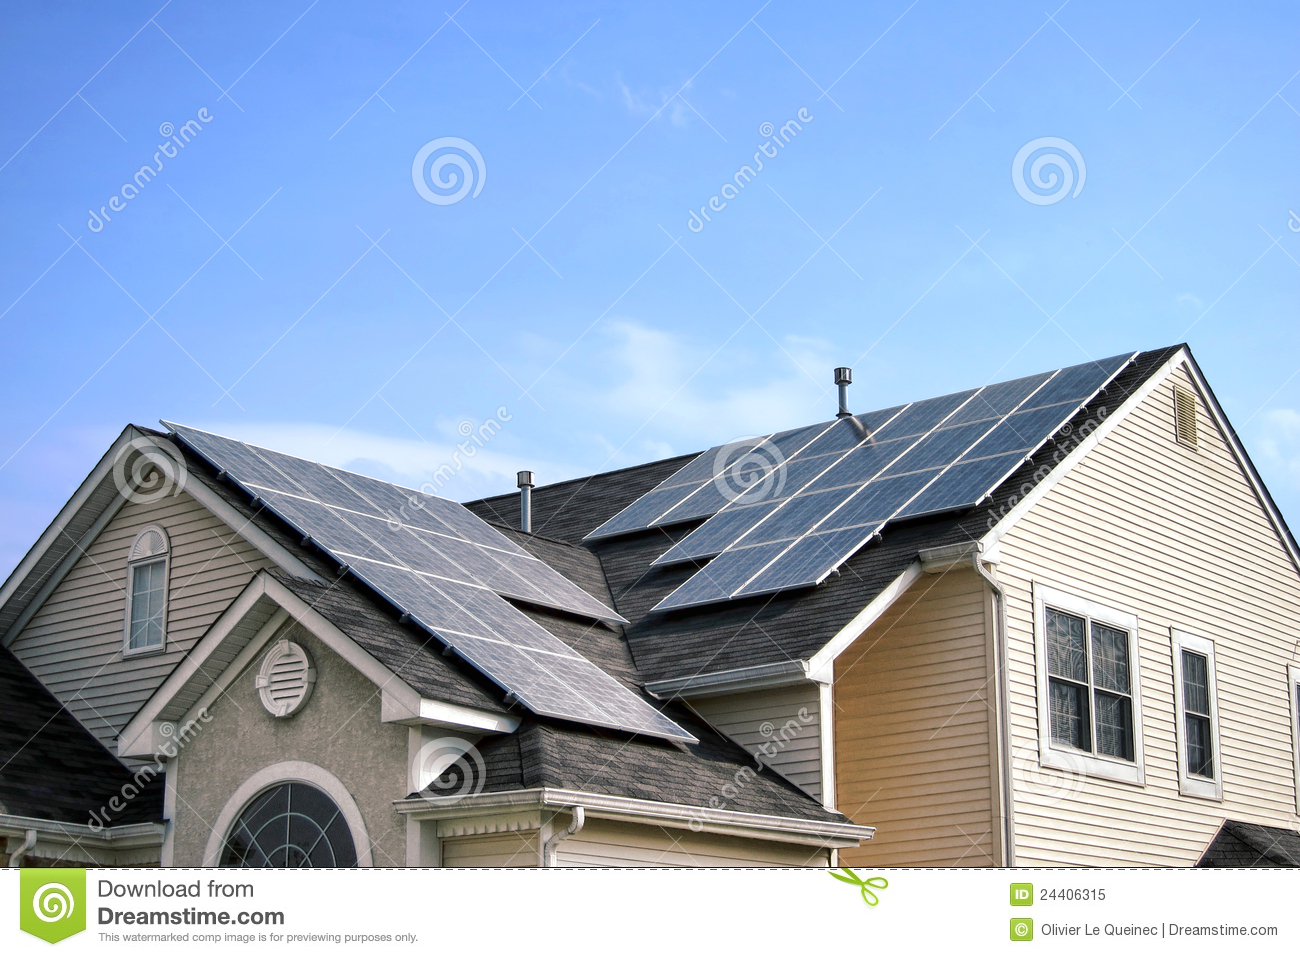 Renewable Green Energy Solar Panels On House Roof Royalty